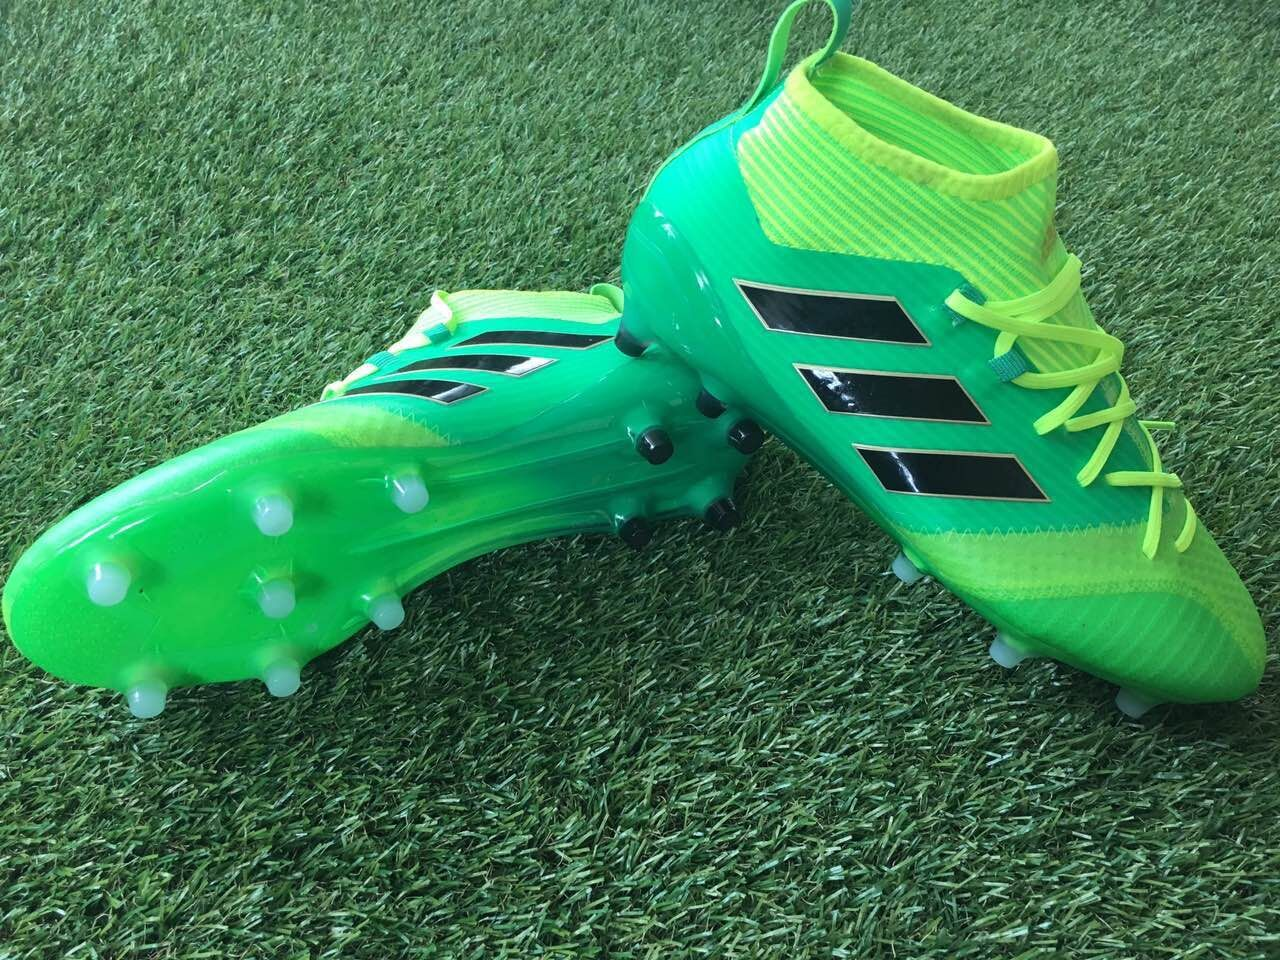 low priced c2ad8 61b4d 2017 Adidas ACE 17 , Solar Green Black Core Yellow Adidas ACE 17.1  Primeknit FG Boots